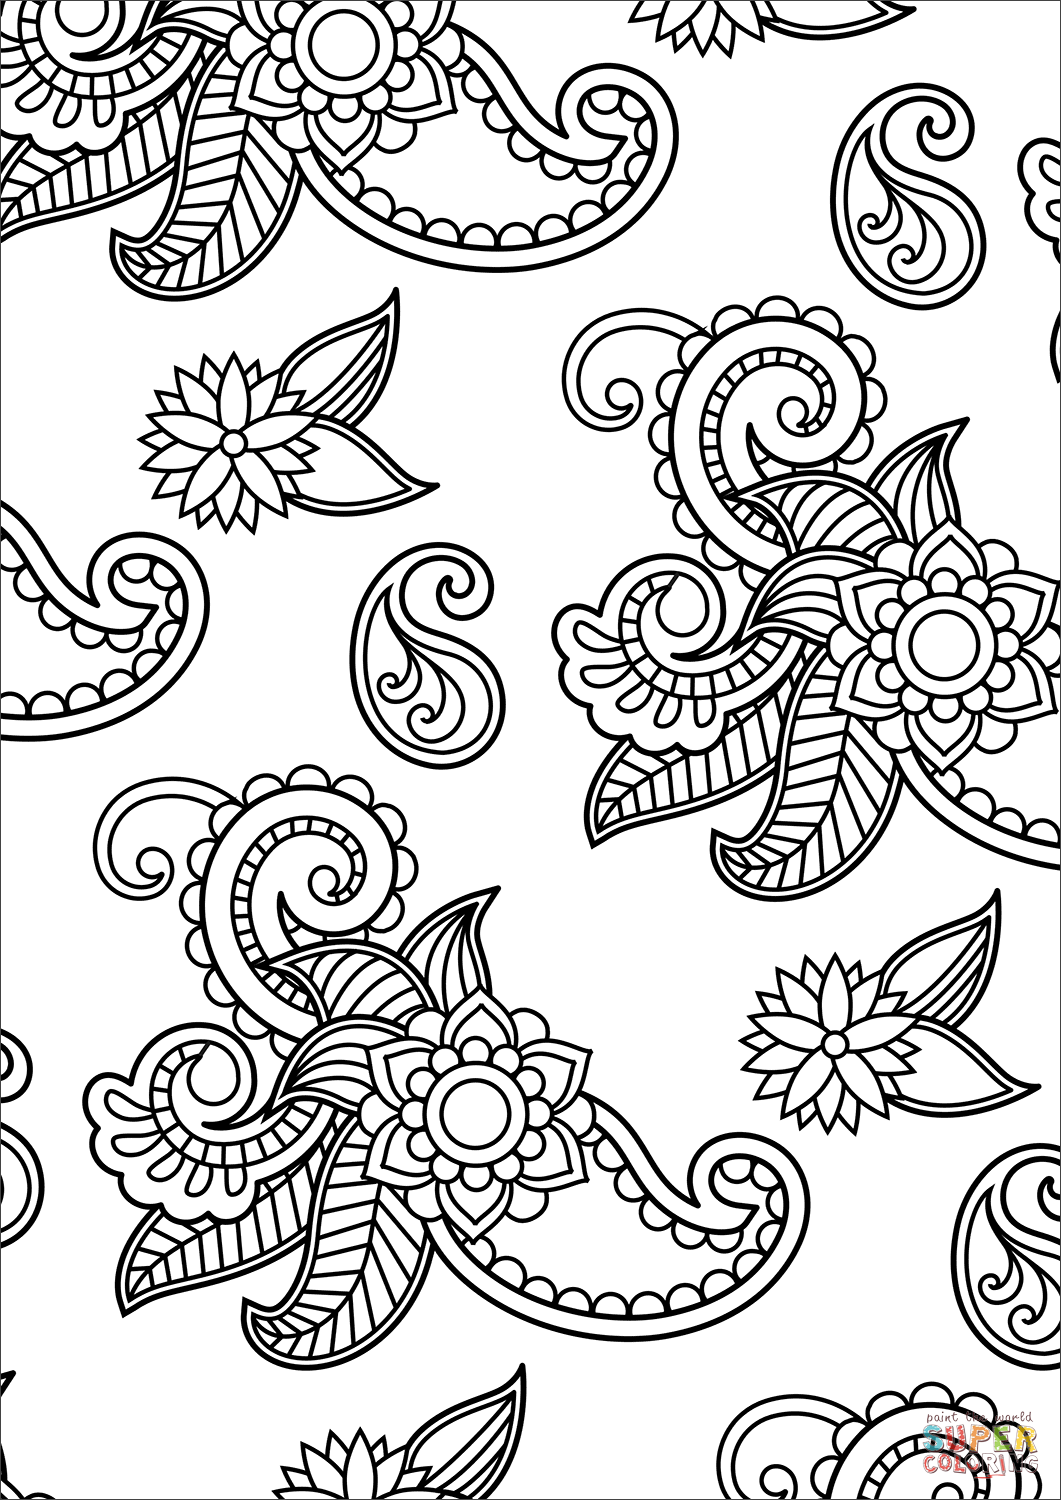 pattern colouring pages to print paisley pattern coloring page free printable coloring pages to pages colouring print pattern